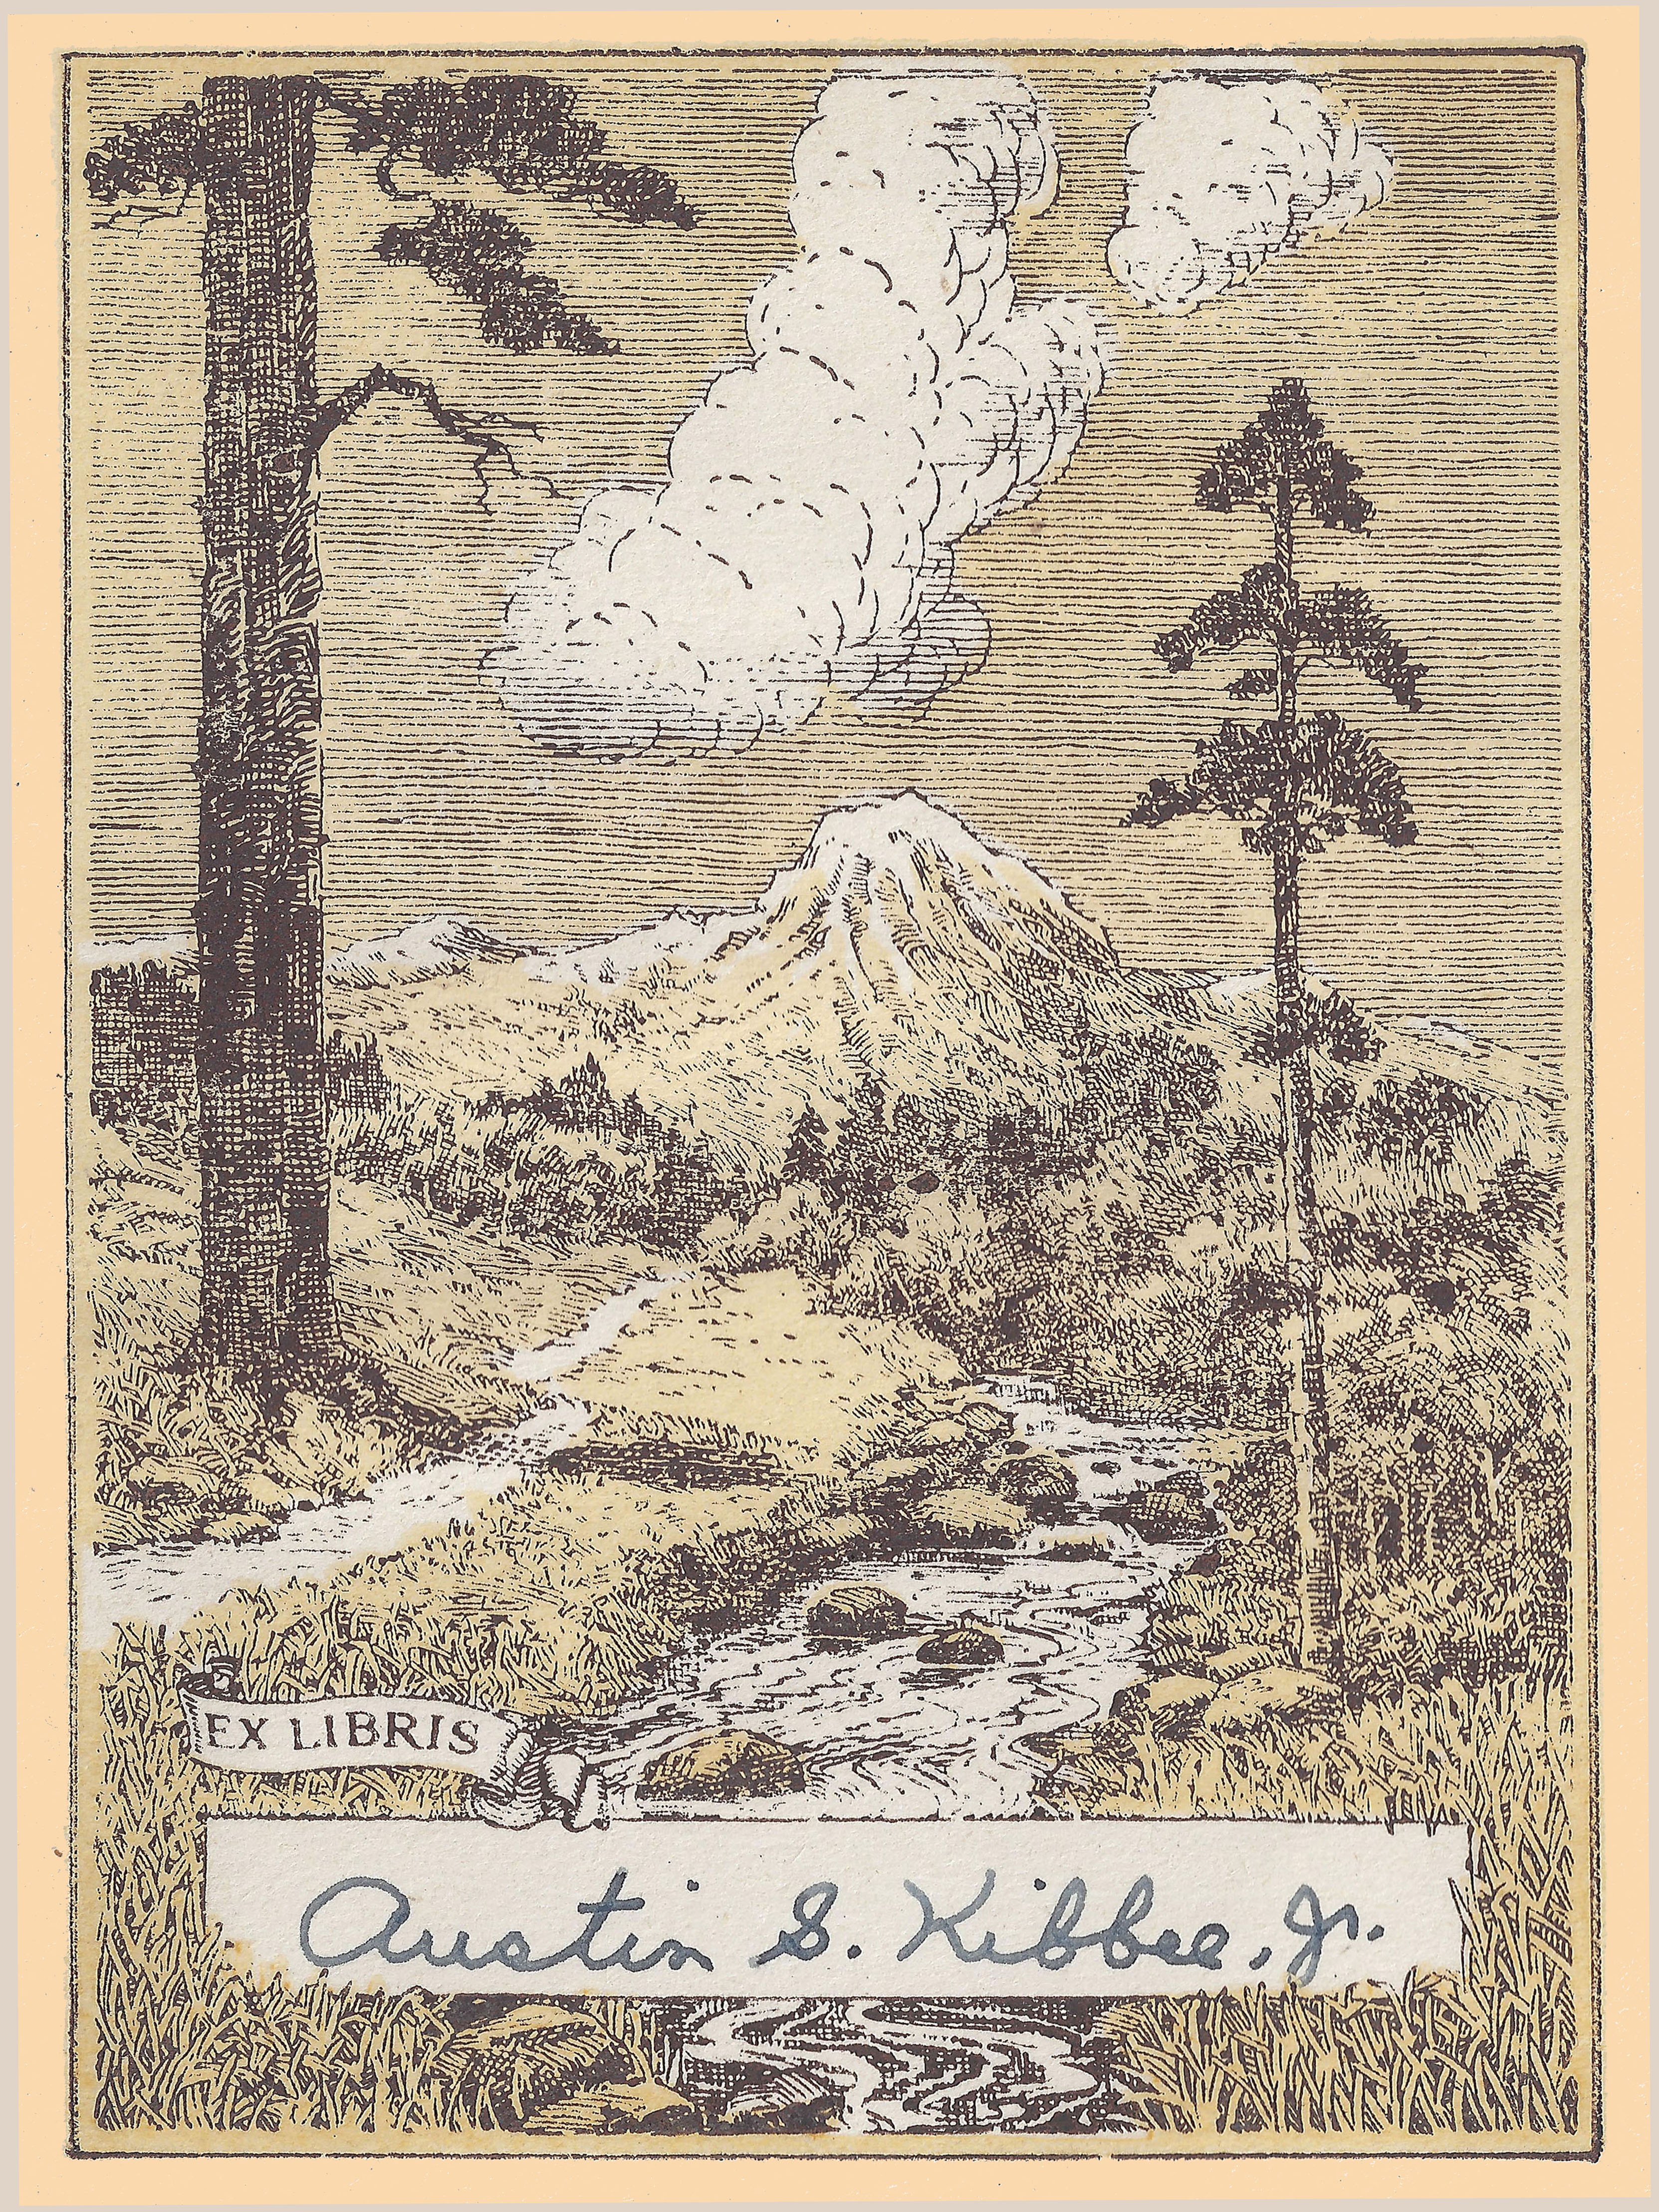 Bookplate of a smoking volcano, with two pine trees on the ground before it and the signature of Austin S. Kibbee, Jr.